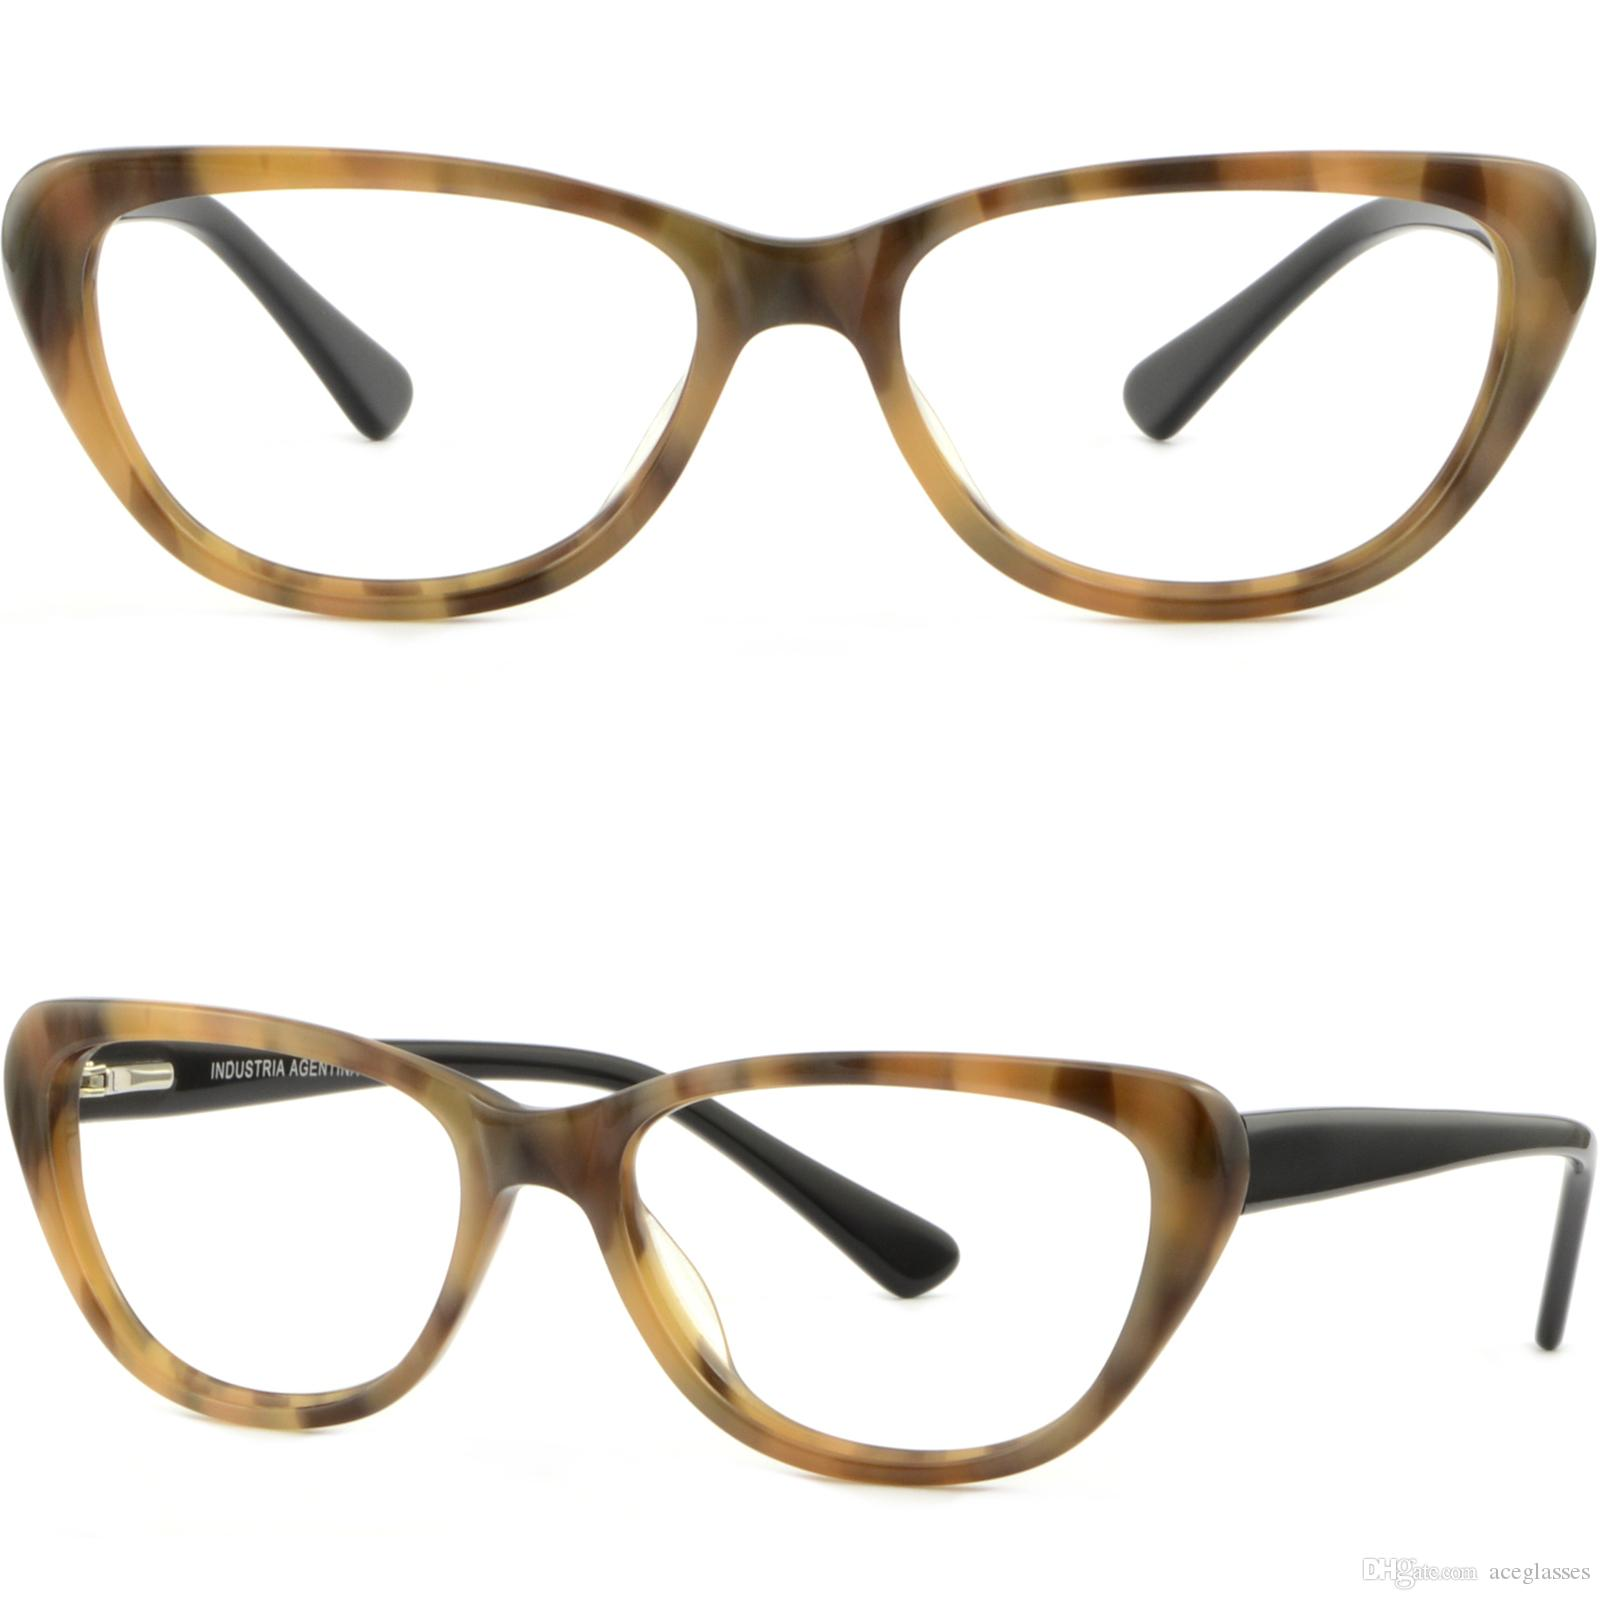 54296e92a6 Women Cateye Cat Eye Acetate Frame Spring Hinge Prescription Glasses Brown  Amber Glasses Frame Online with  23.9 Piece on Aceglasses s Store